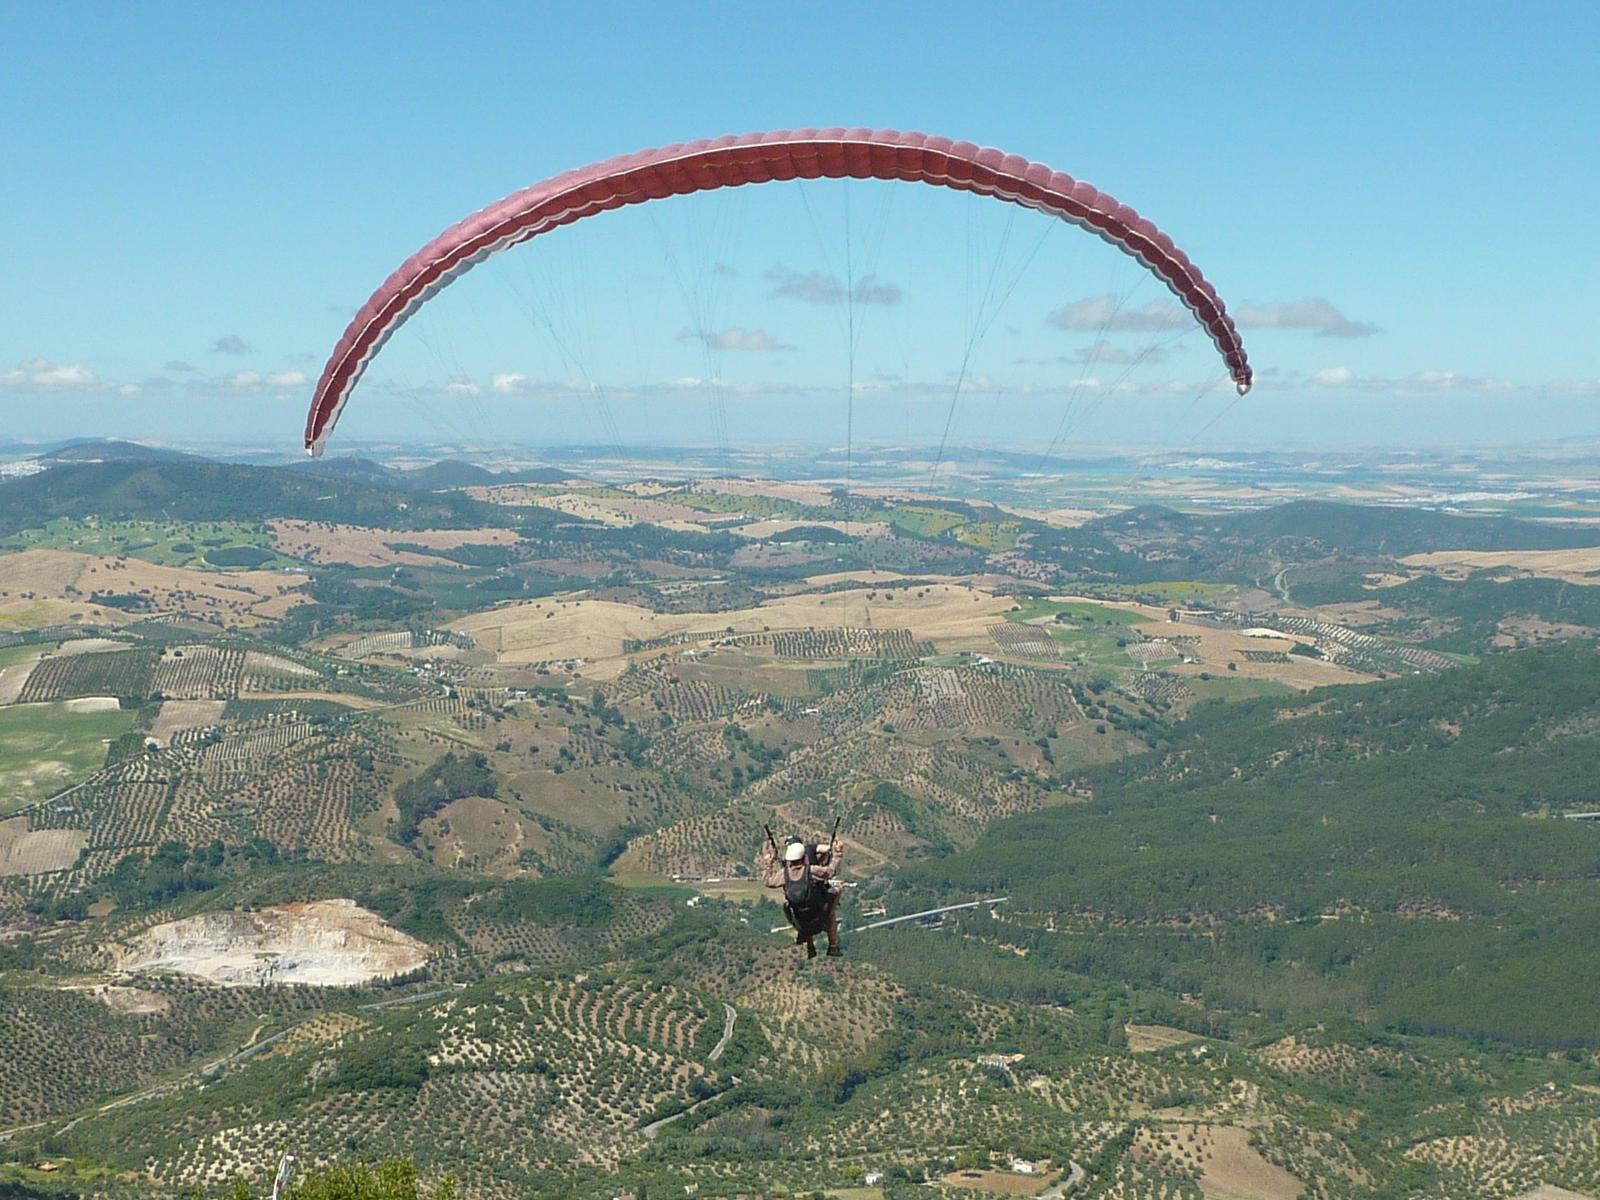 Photo of Parapente en Algodonales